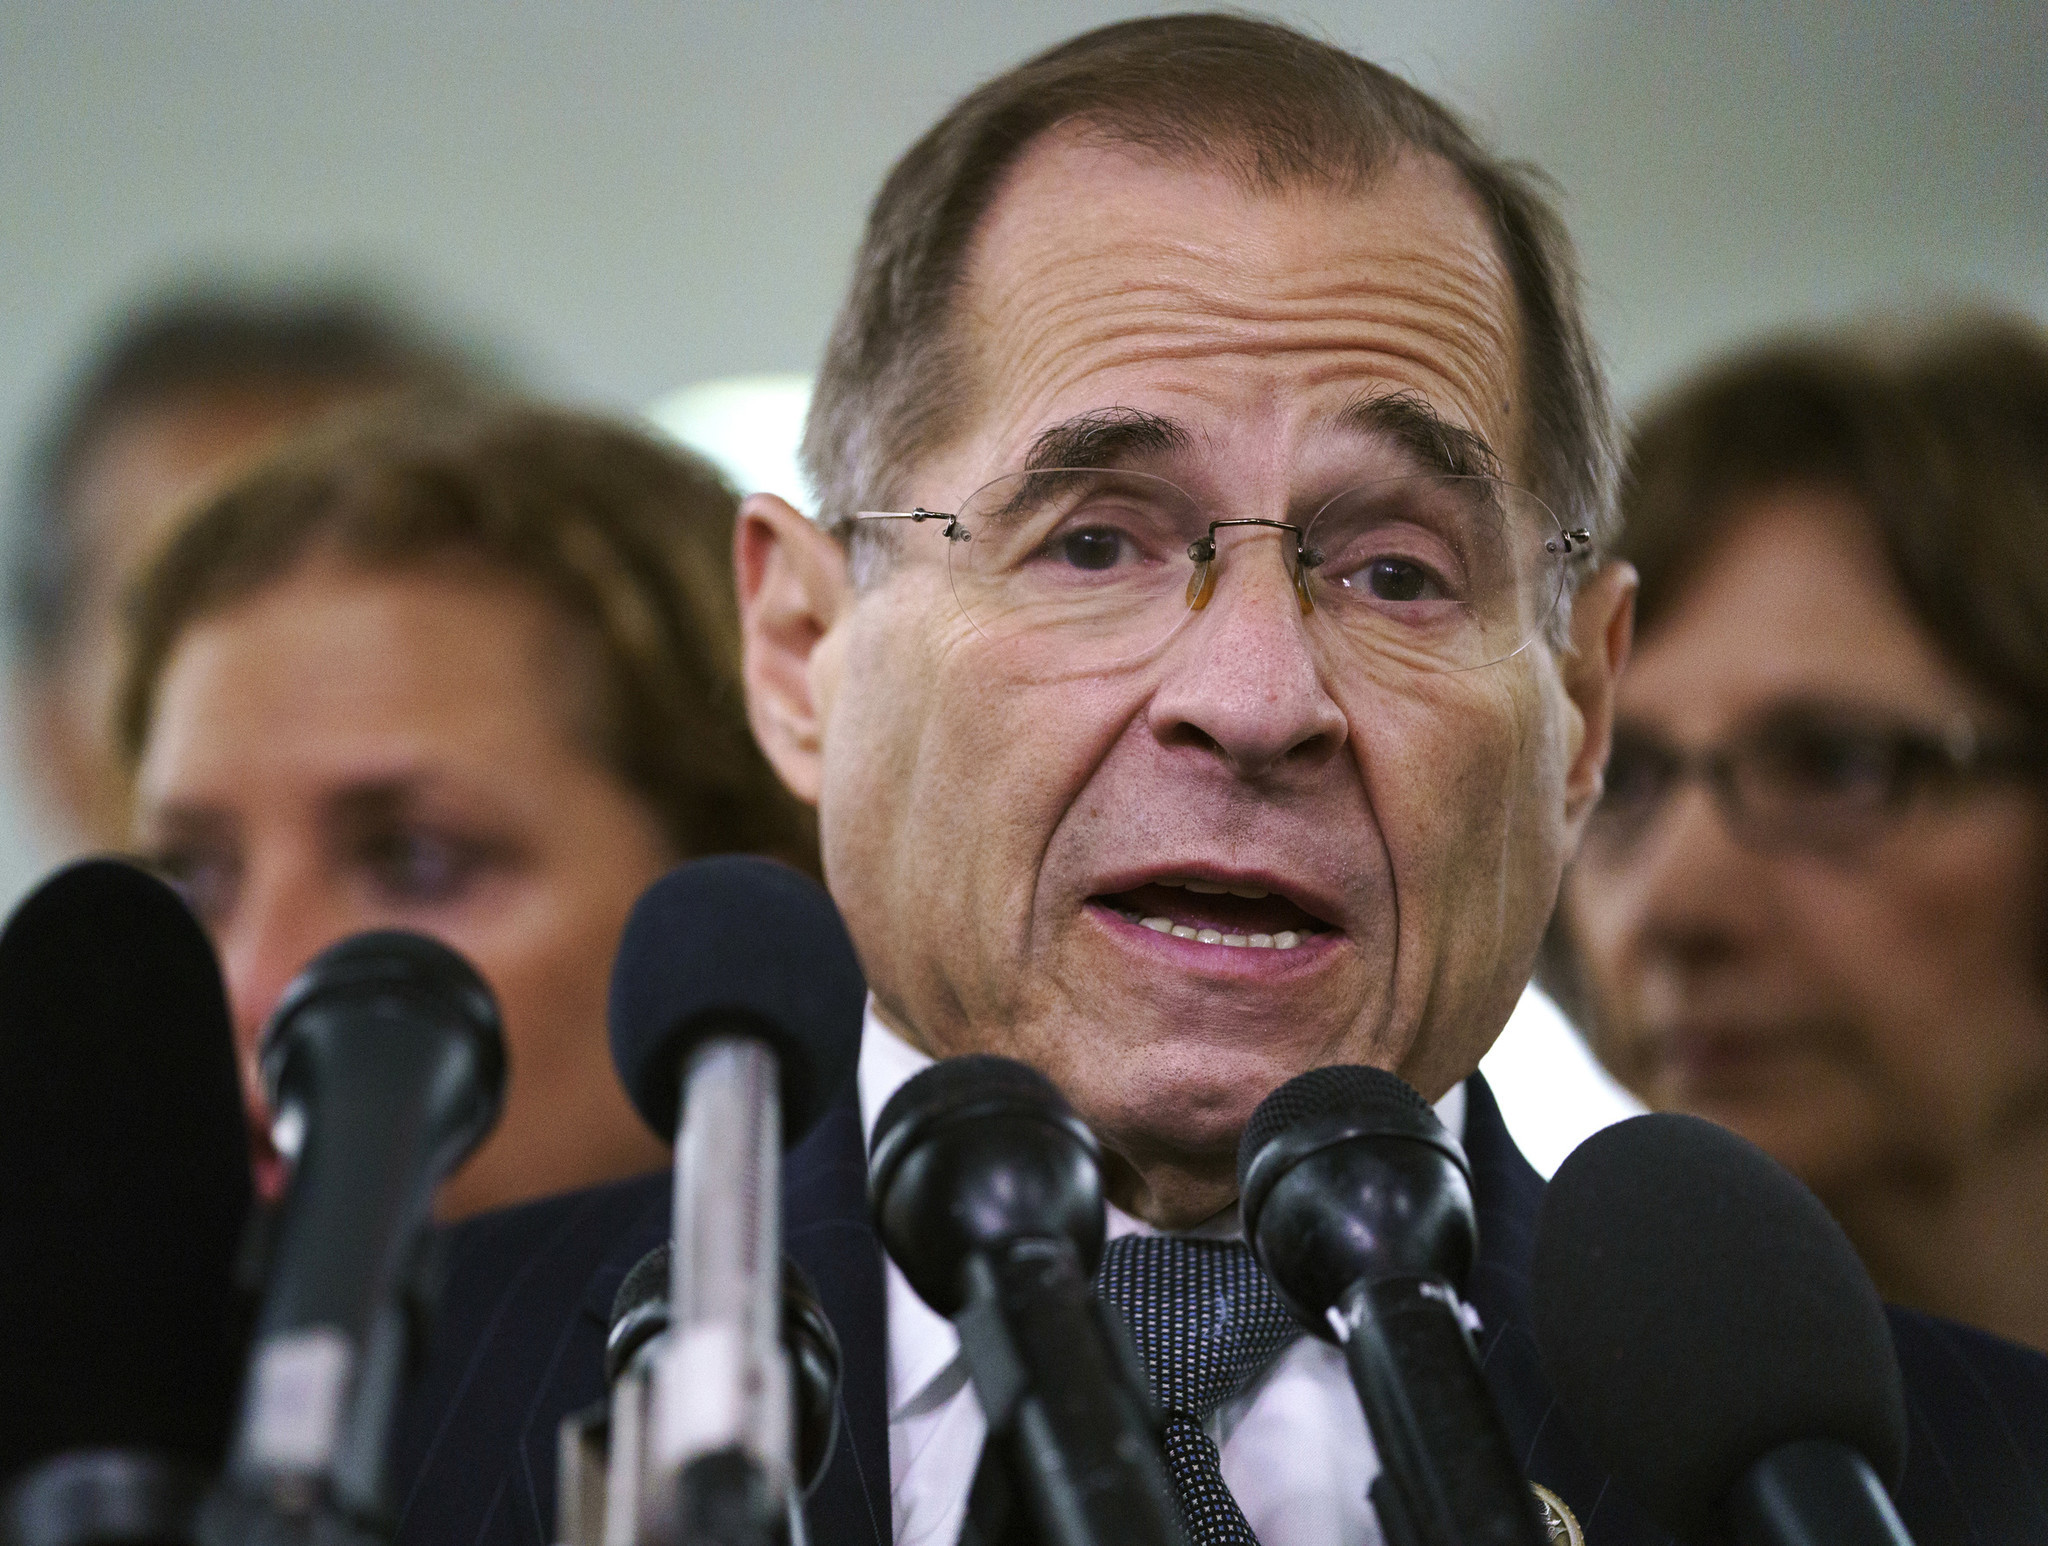 Jerry Nadler skips impeachment hearing as wife battles pancreatic cancer